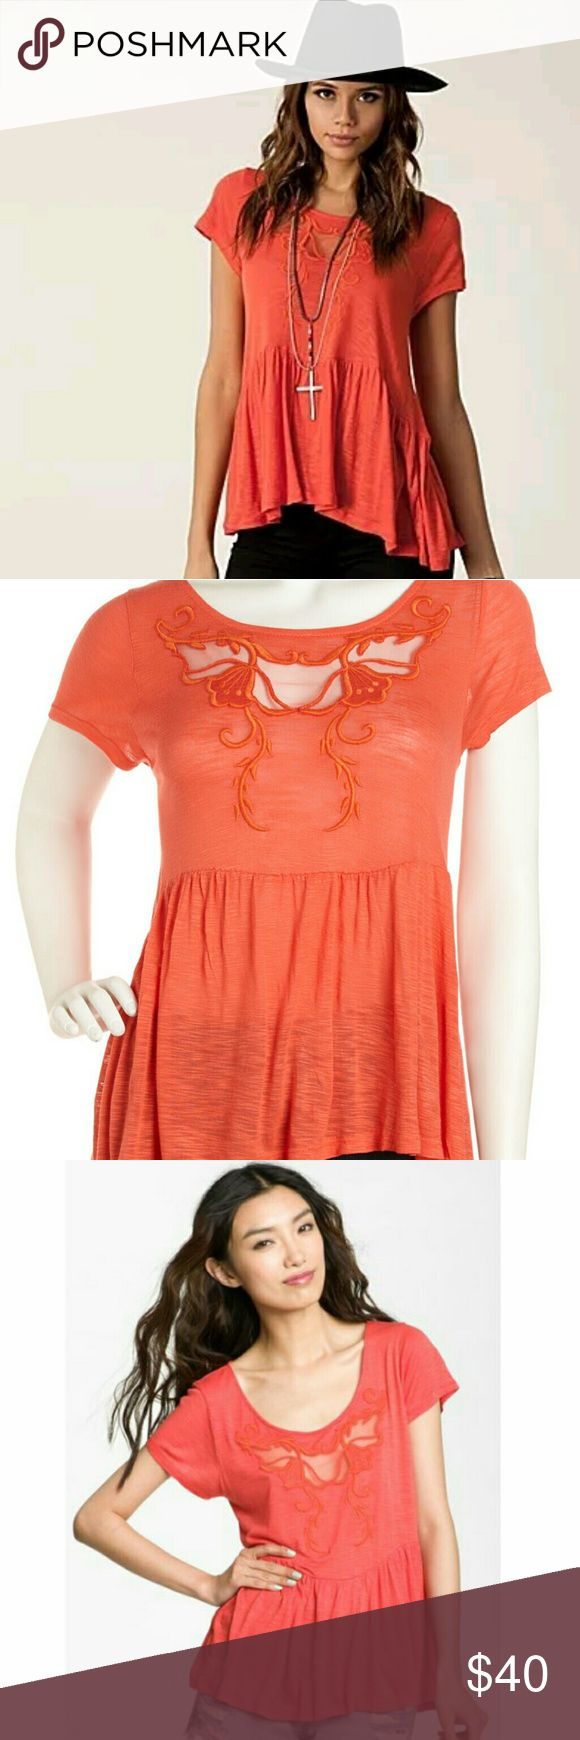 Free People Sweet Pepper XS Cutout Top Size XS Brand New From OFF5TH SAKS FIFTH AVENUE OUTLET  Slub knit with embroidery and mesh insets.Scoop neckline.Cap sleeves.Boxy silhouette.Wide ruffled hem.Pullover style.Viscose; hand wash cold.Imported. Free People Tops Blouses